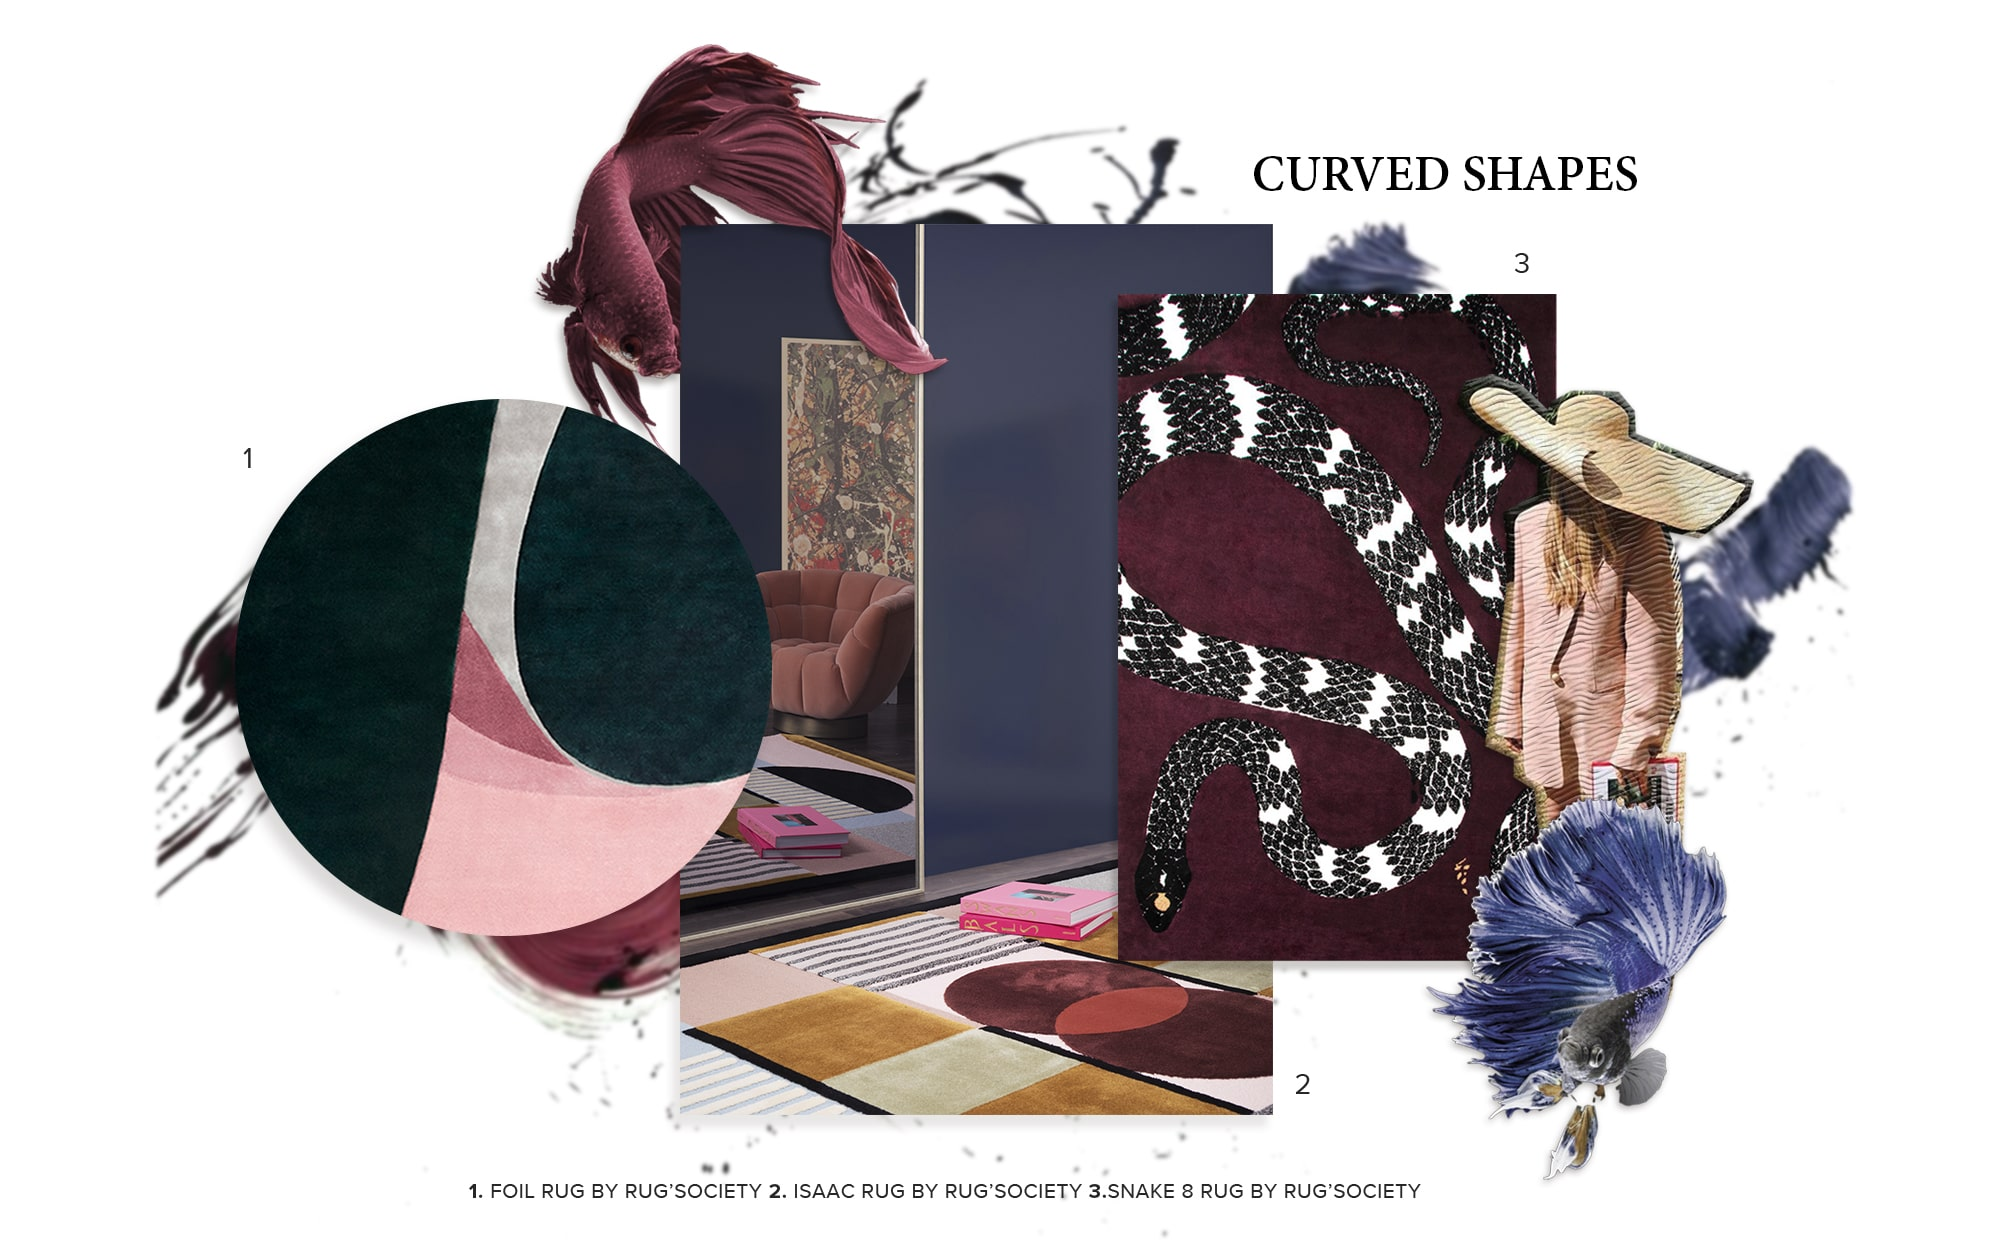 Curved Shapes - Trends 2019